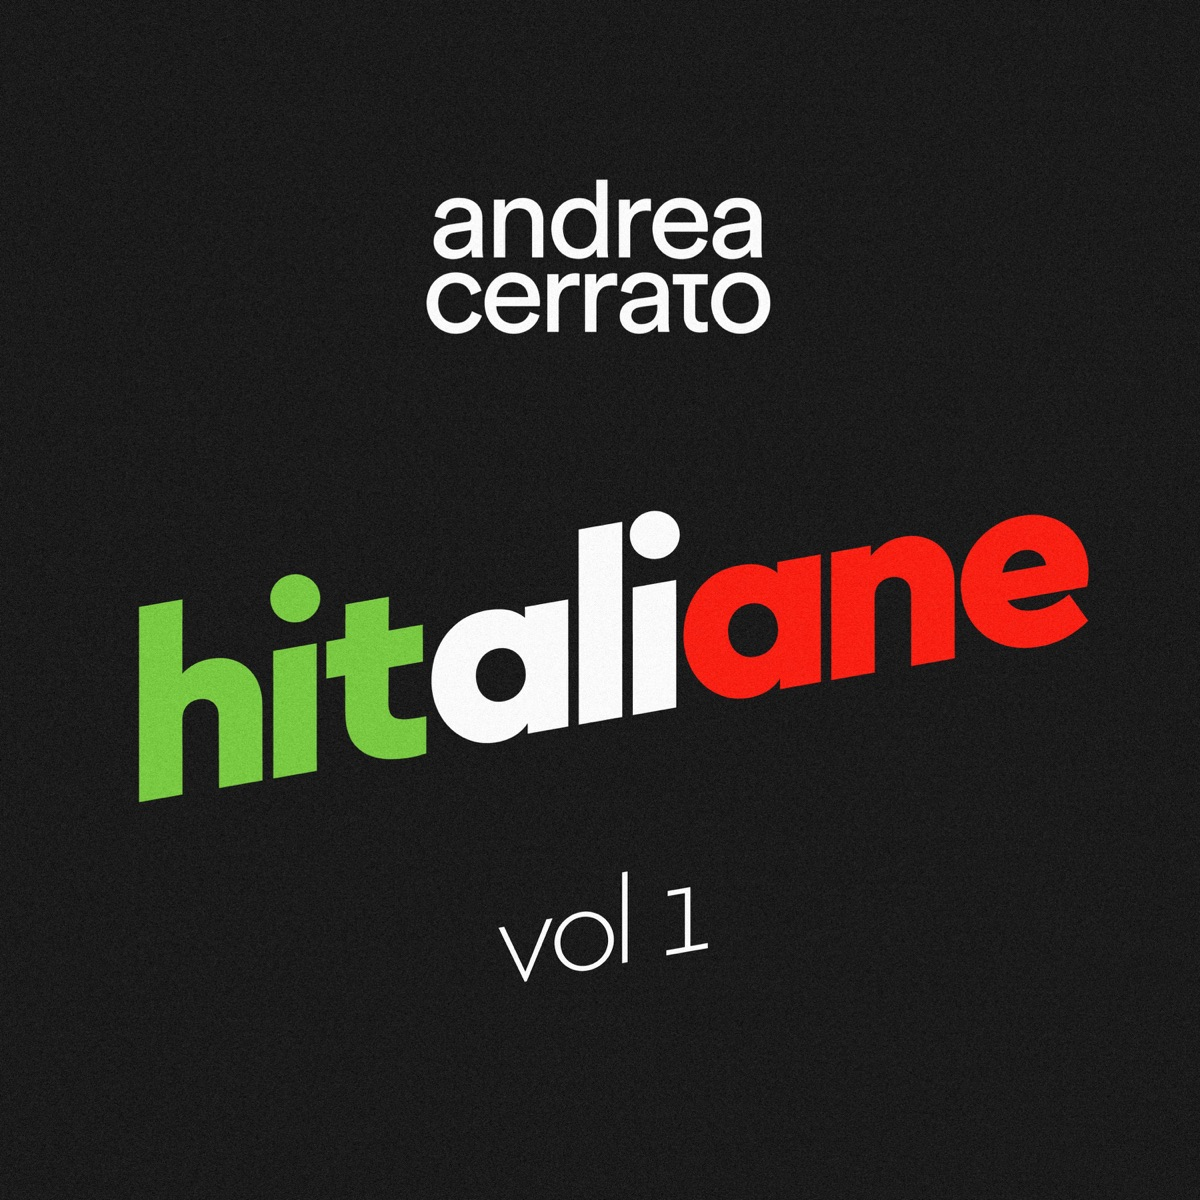 Hitaliane Vol 1 Andrea Cerrato CD cover